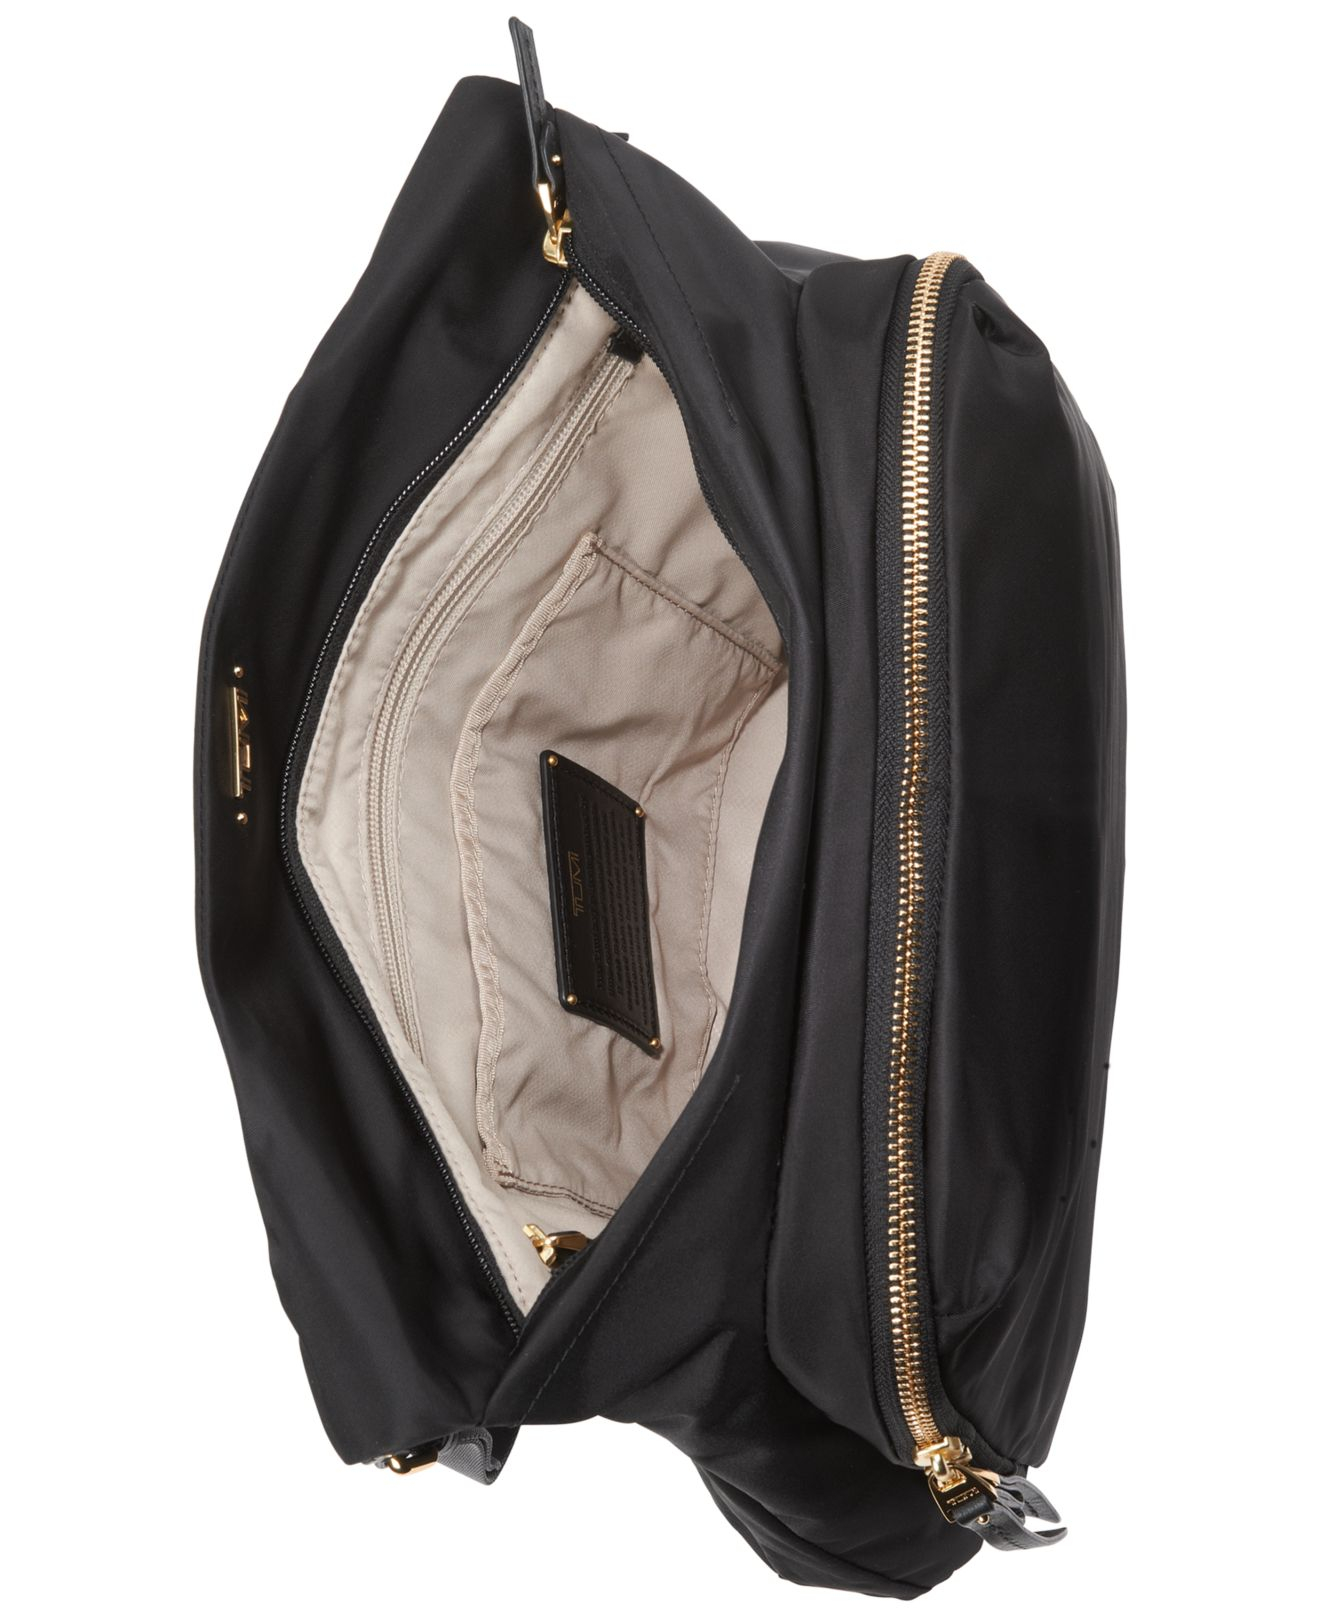 Tumi Luggage Voyageur Sumatra Crossbody Bag 84